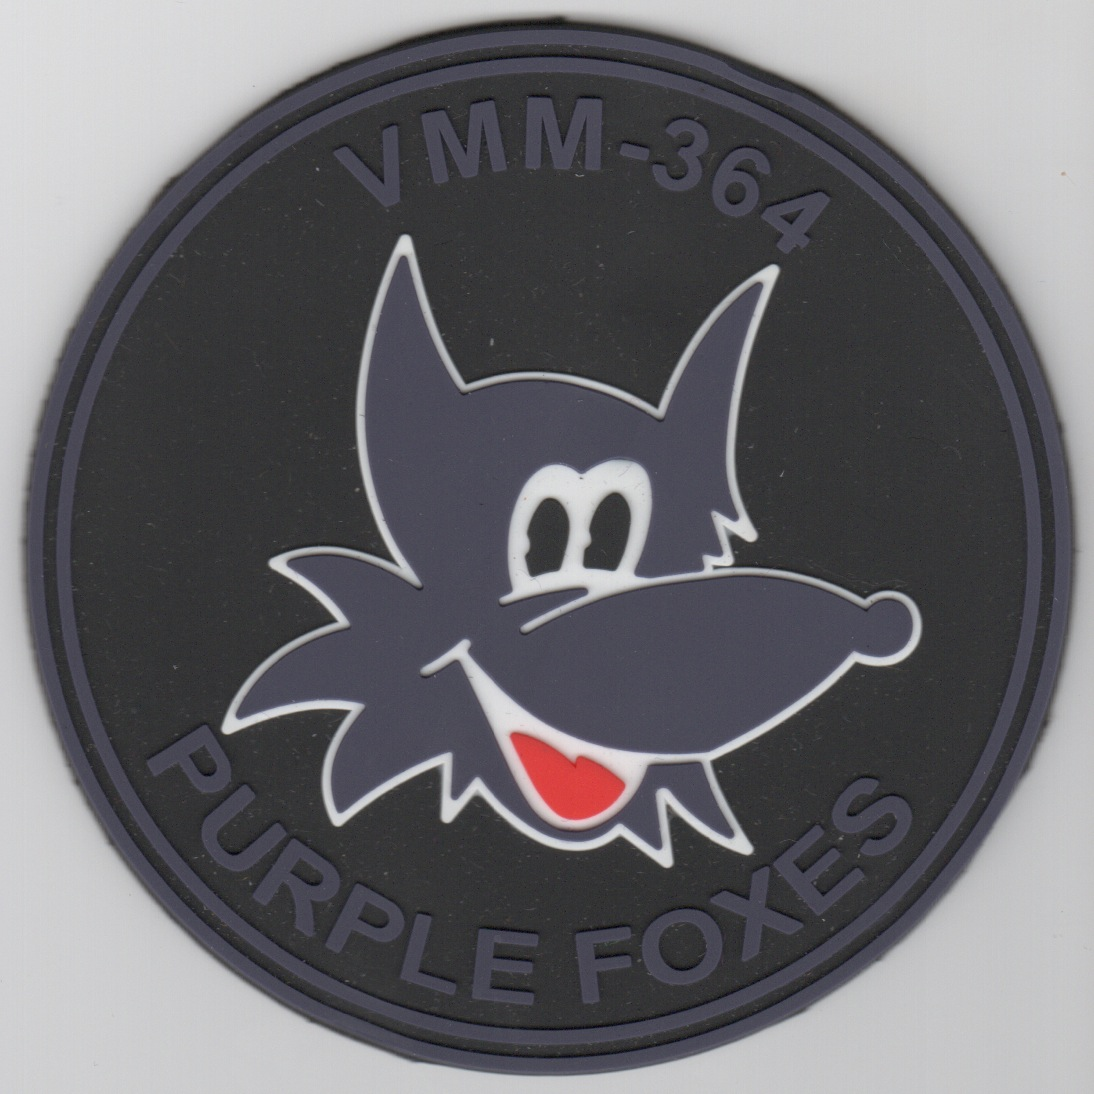 VMM-364 'Purple Foxes' (PVC)